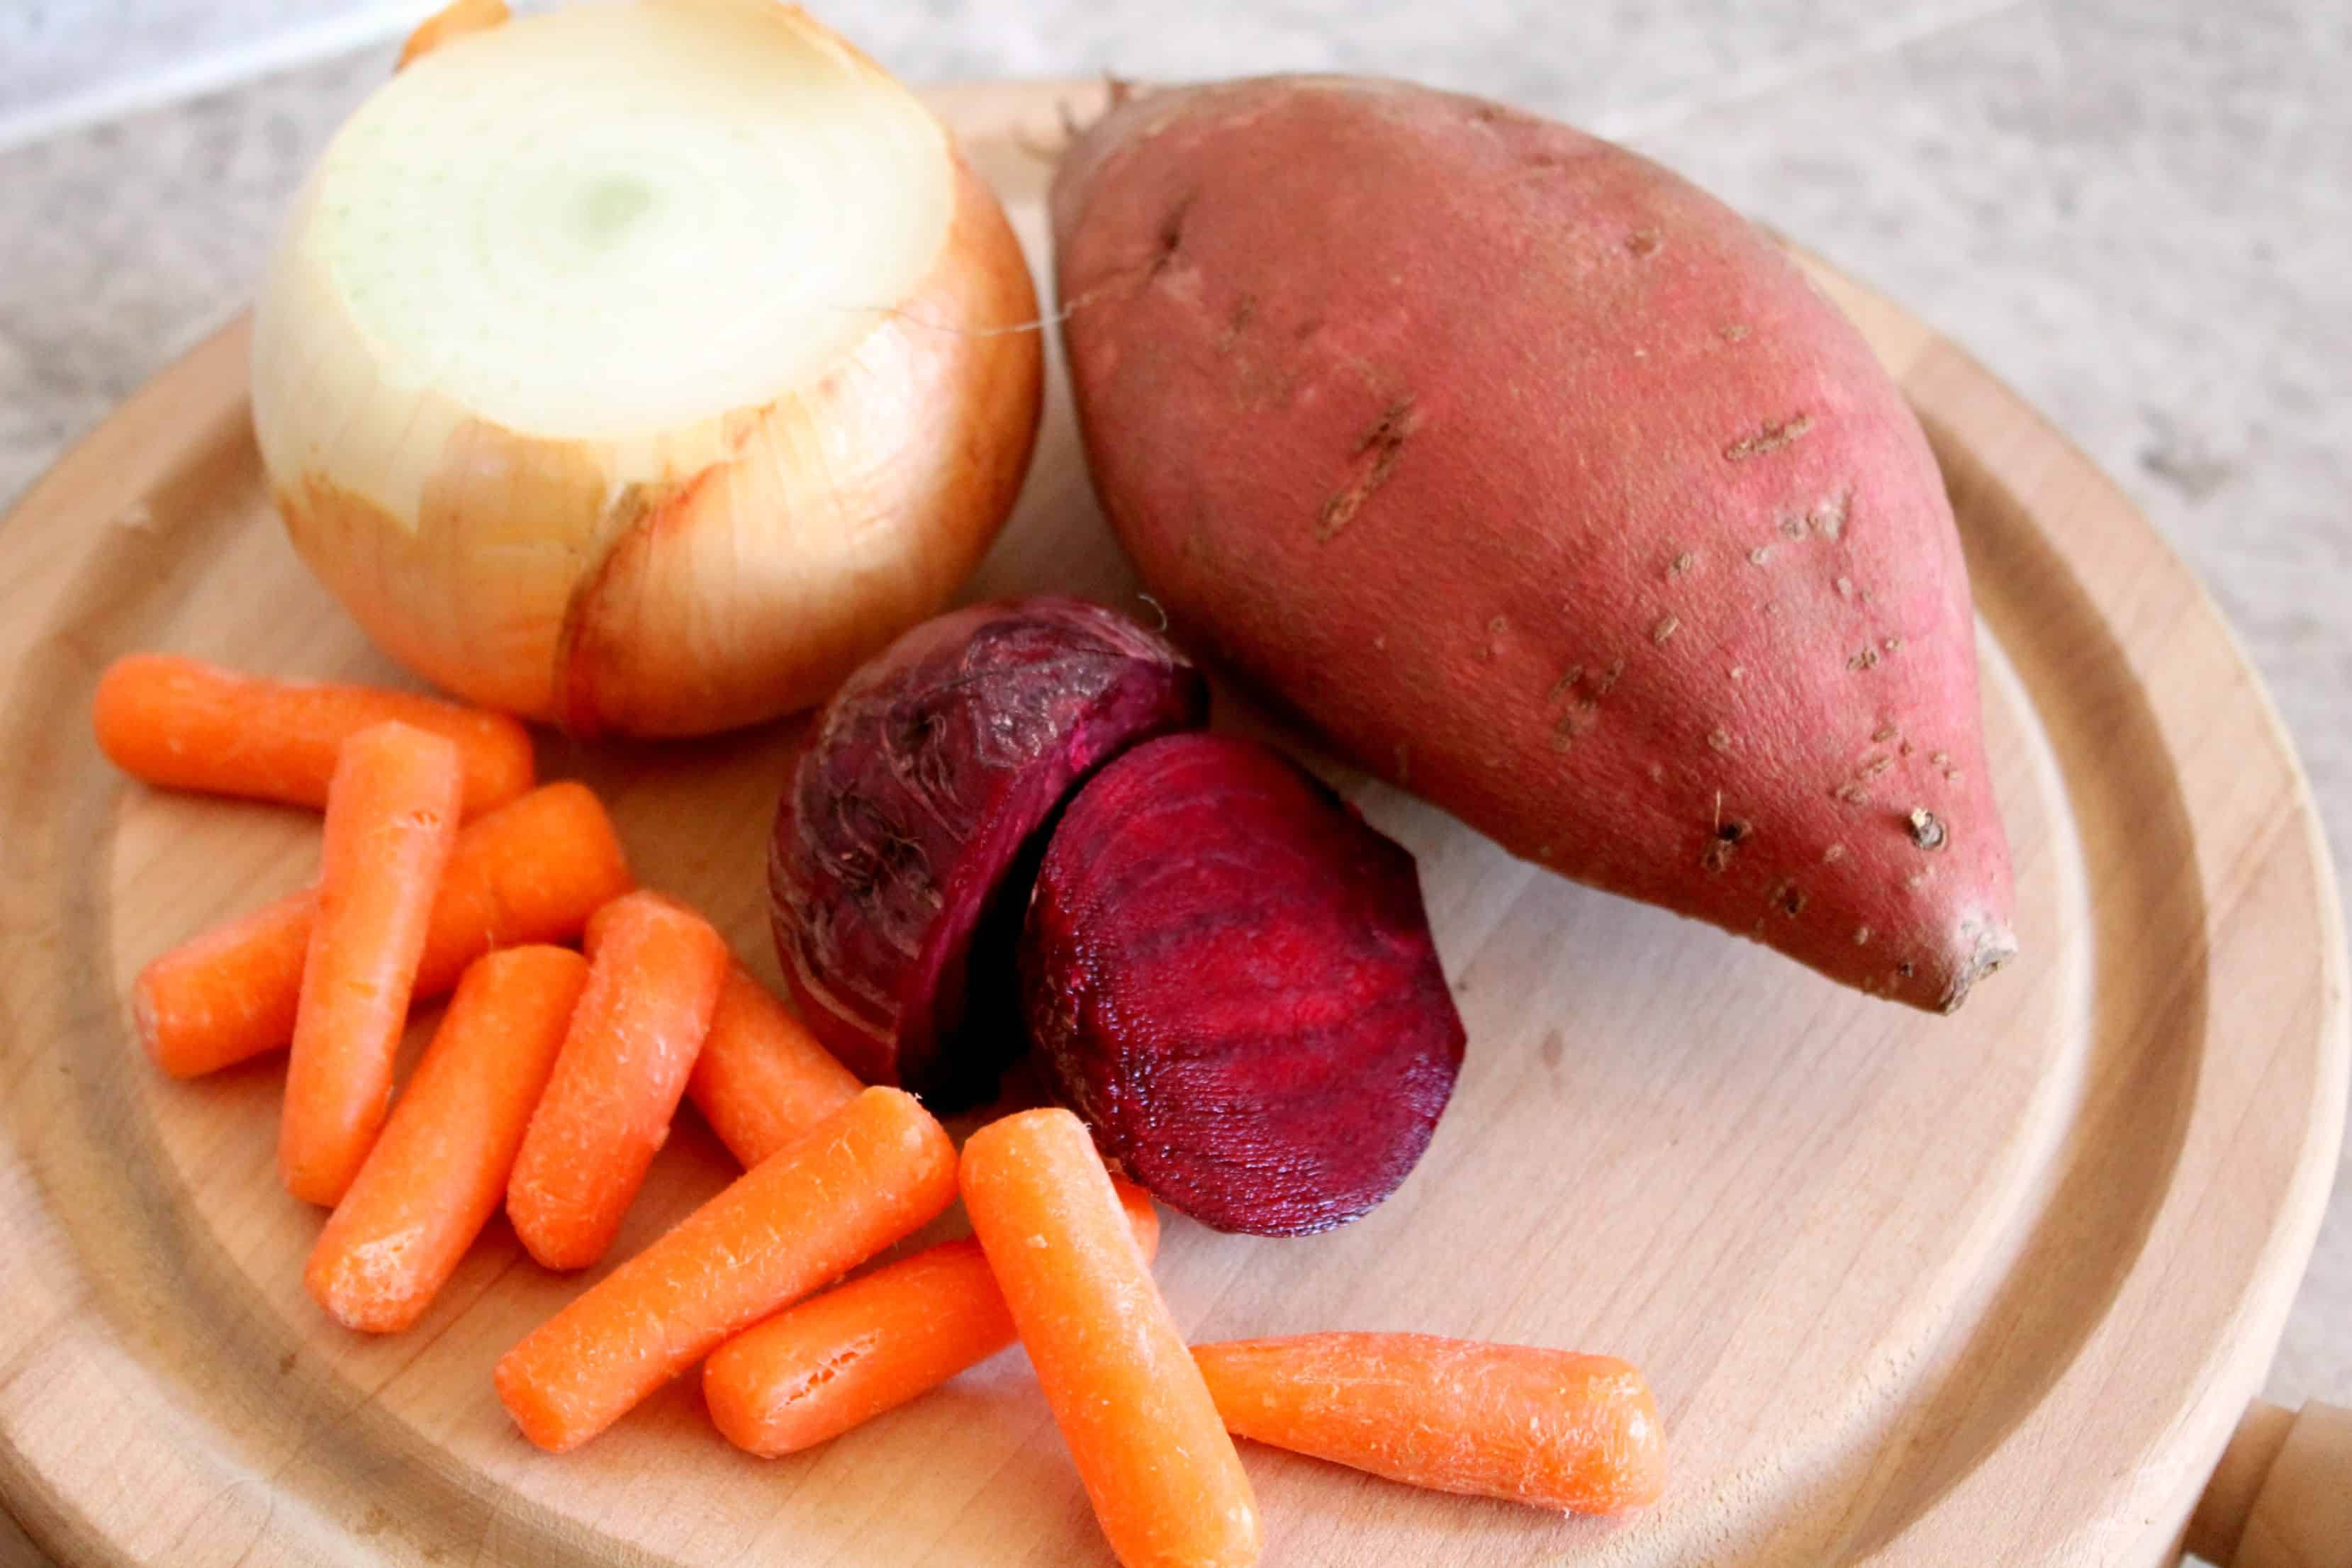 sweet potato, onion, beets, carrots